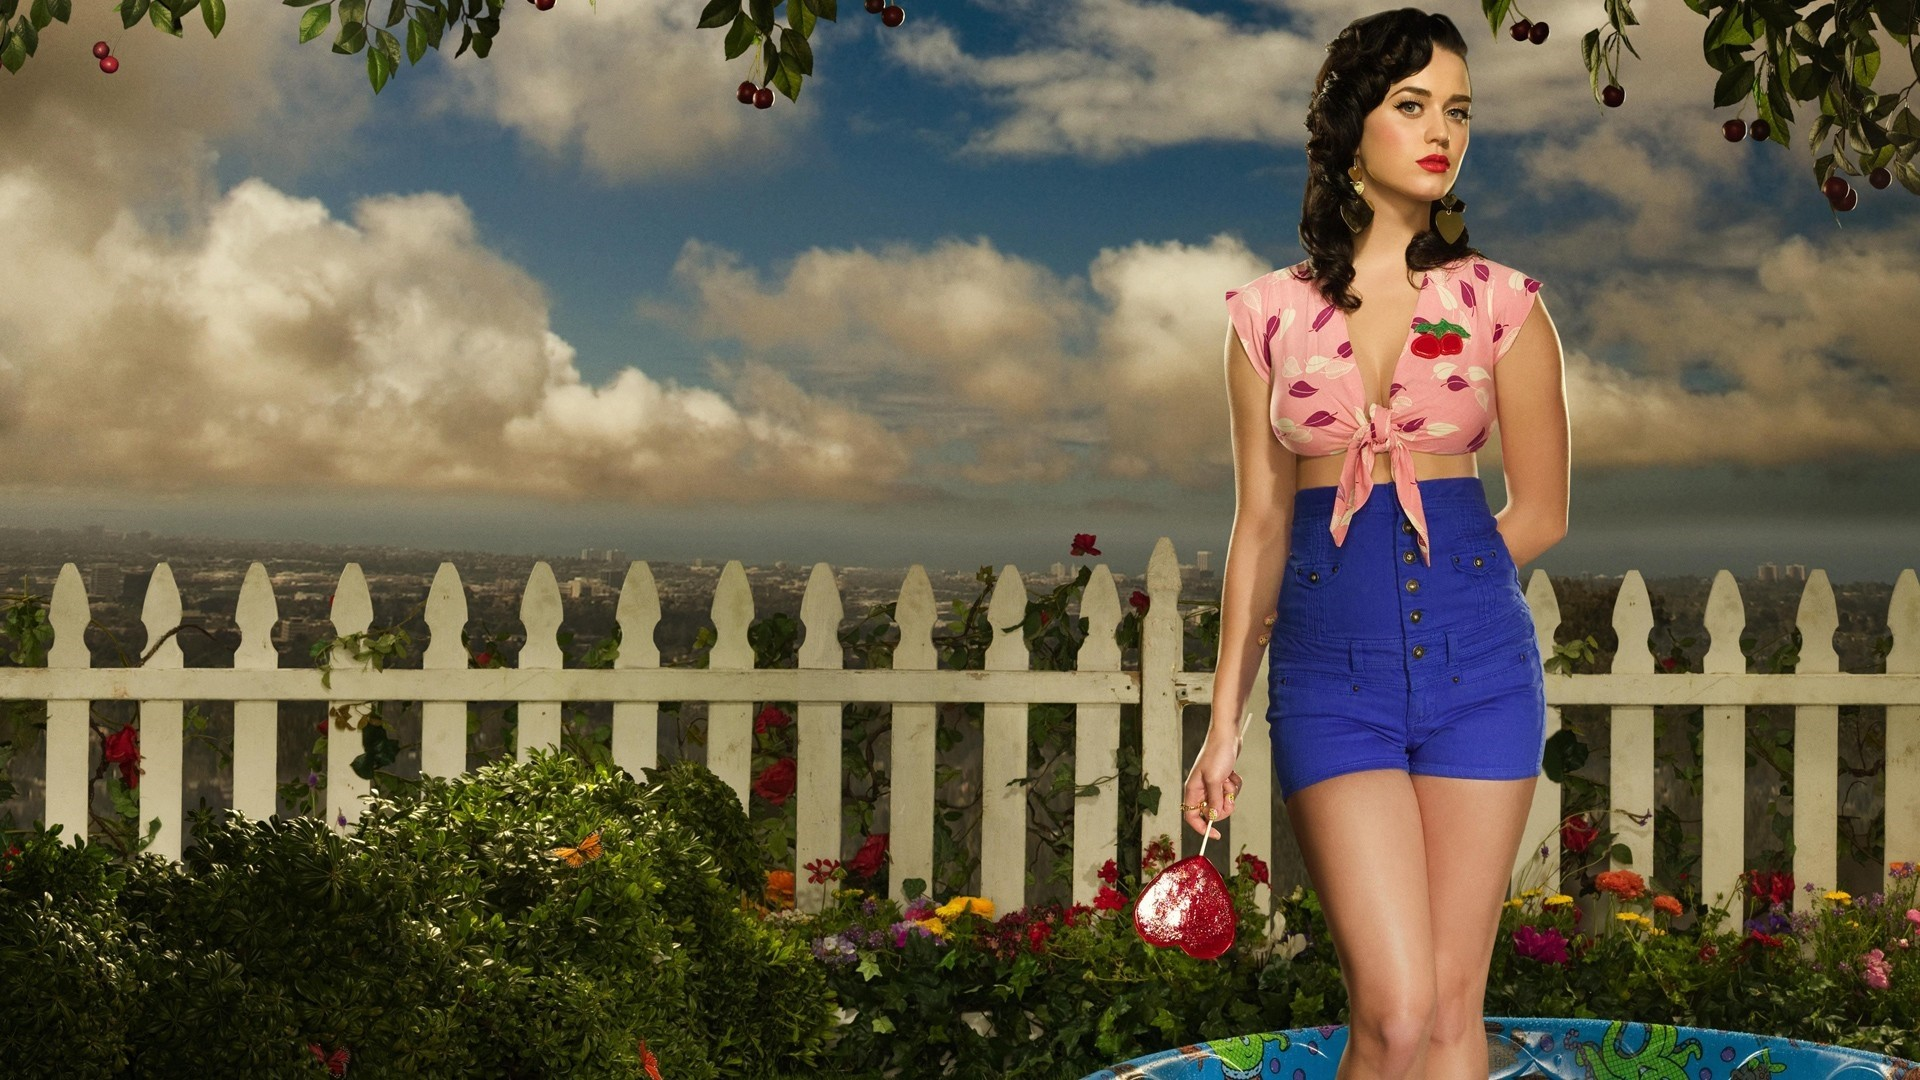 Katy Perry Background